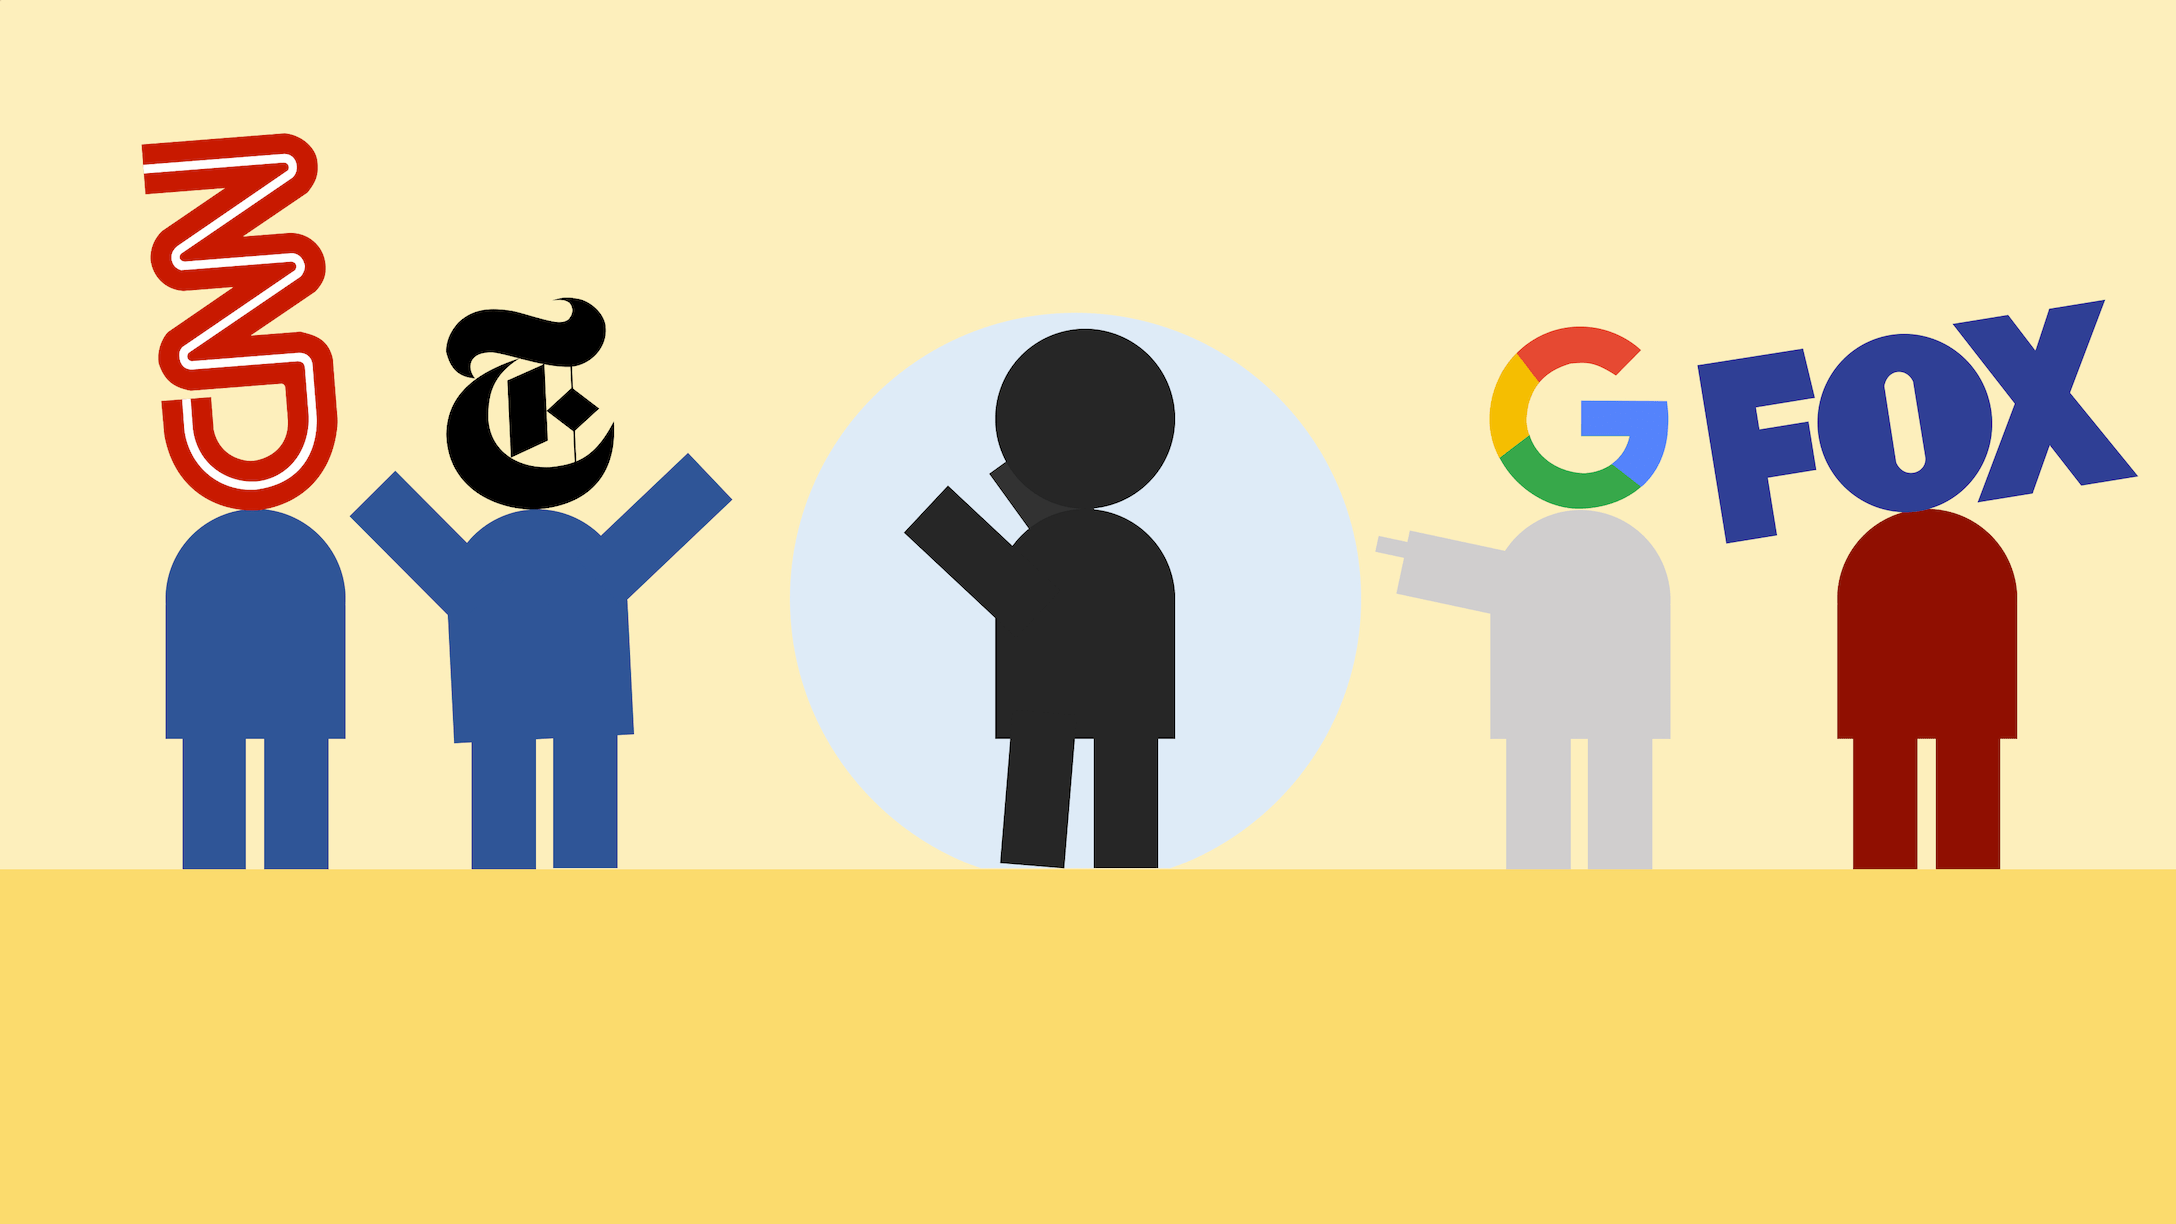 Google has the tendency to send people to the left